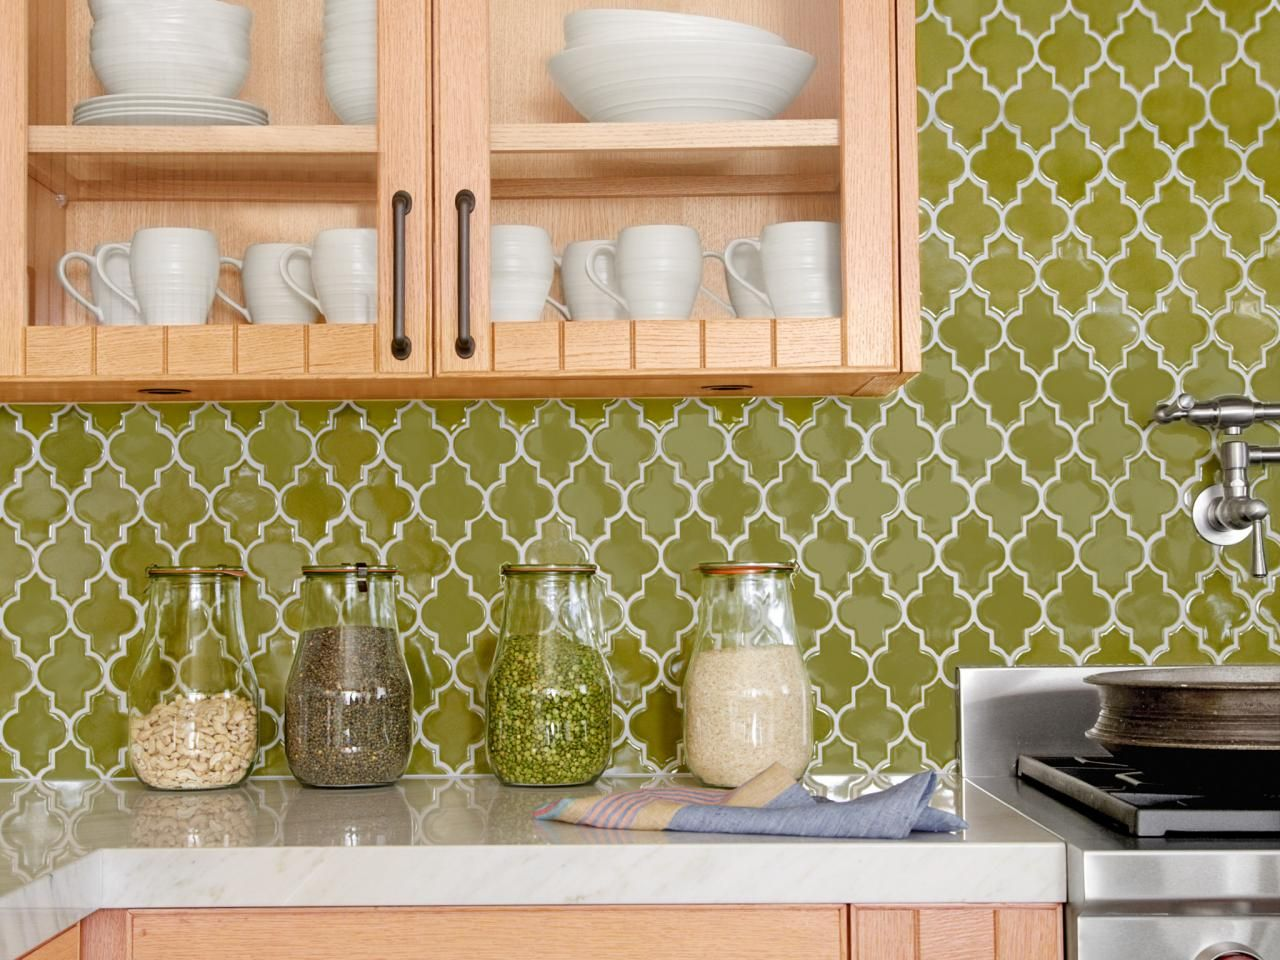 Cool Backsplash Ideas Kitchen backsplash Funky kitchen and Kitchens